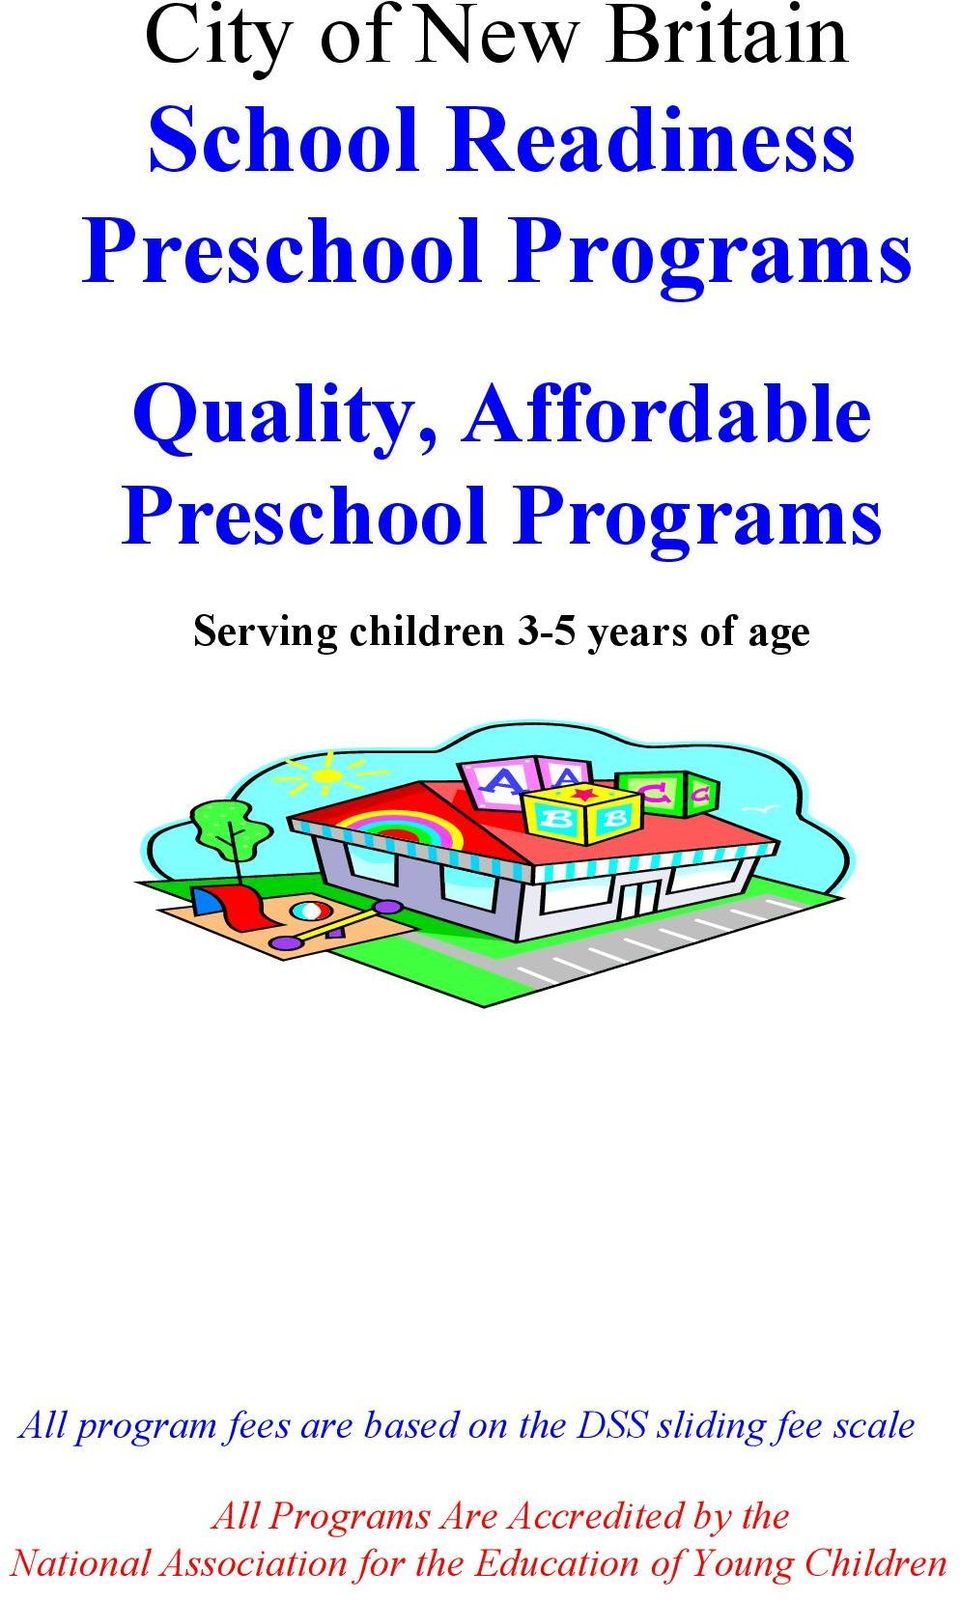 program fees are based on the DSS sliding fee scale All Programs Are